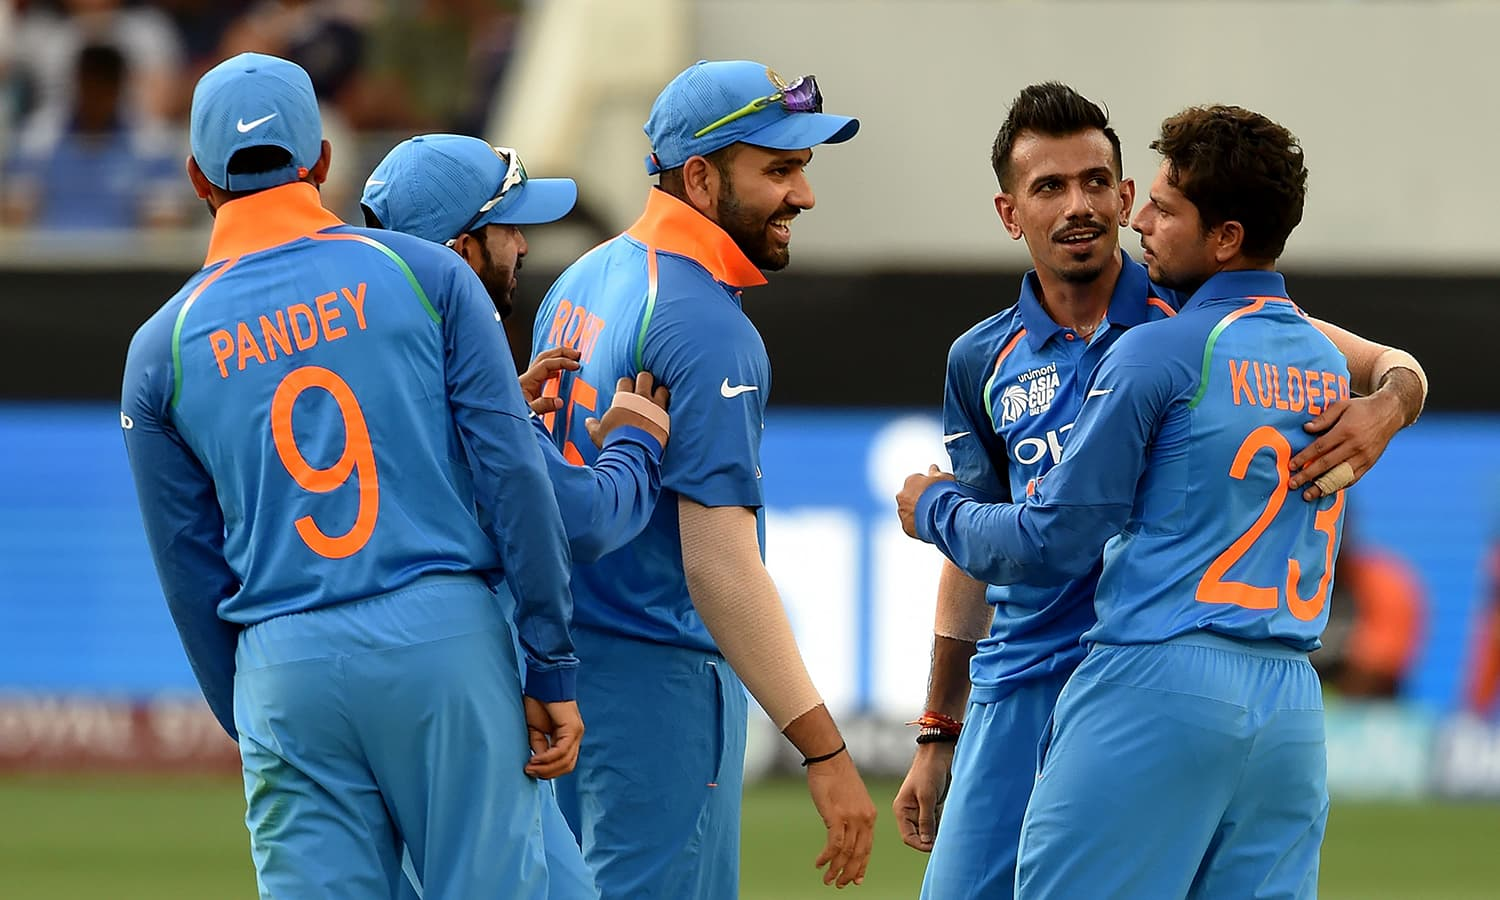 Indian cricketer Kuldeep Yadav (R) celebrates with teammates after dismissing Pakistan batsman Babar Azam. — AFP